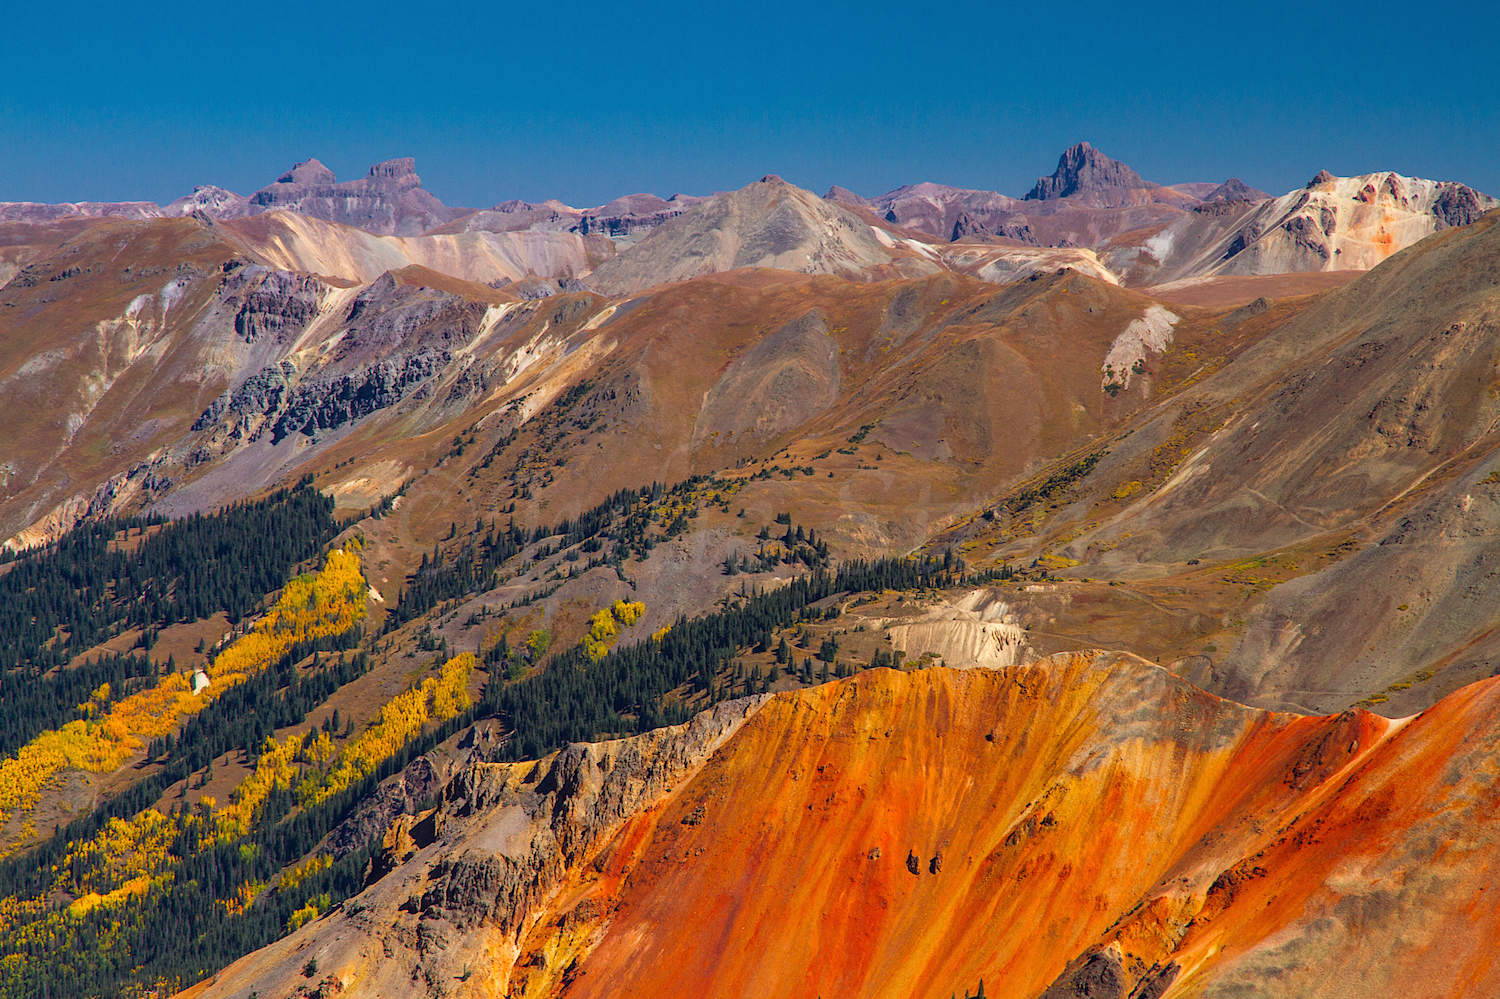 Red Mountain #3, Image #1146